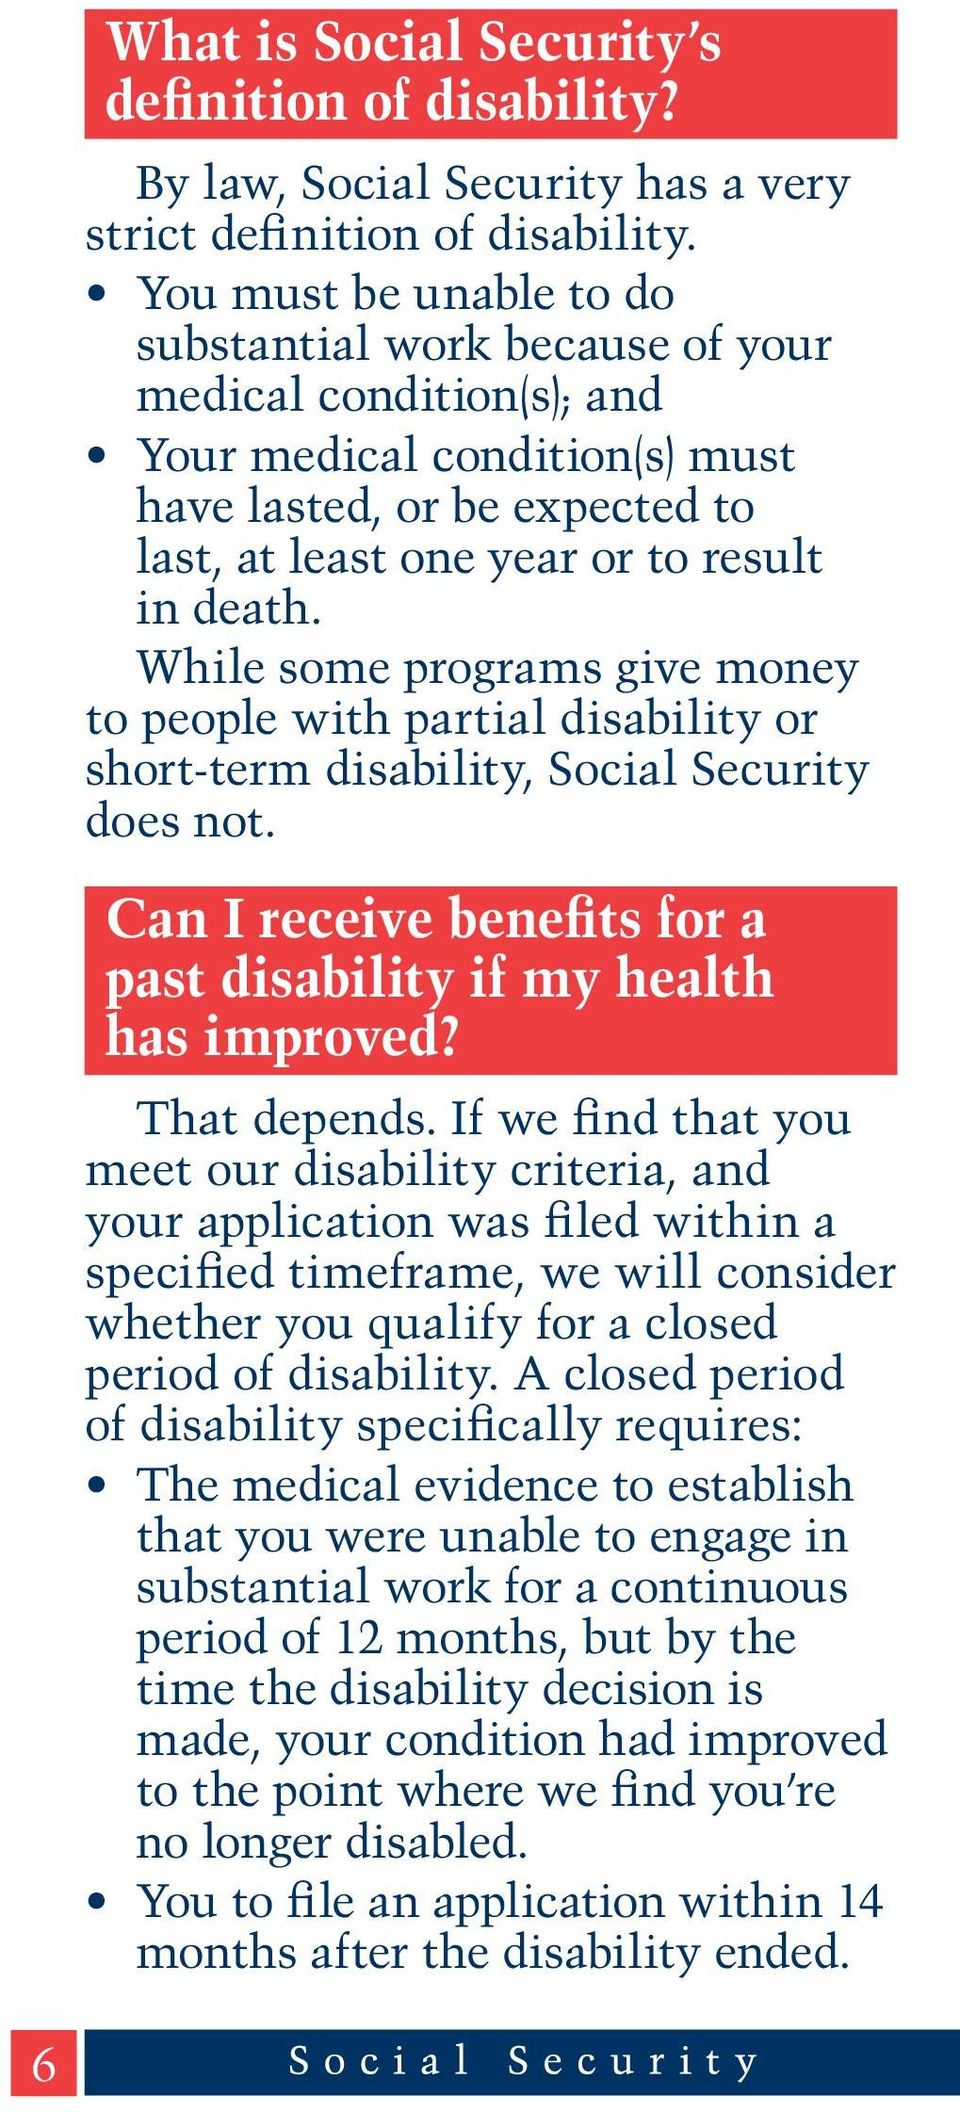 While some programs give money to people with partial disability or short-term disability, Social Security does not. Can I receive benefits for a past disability if my health has improved?